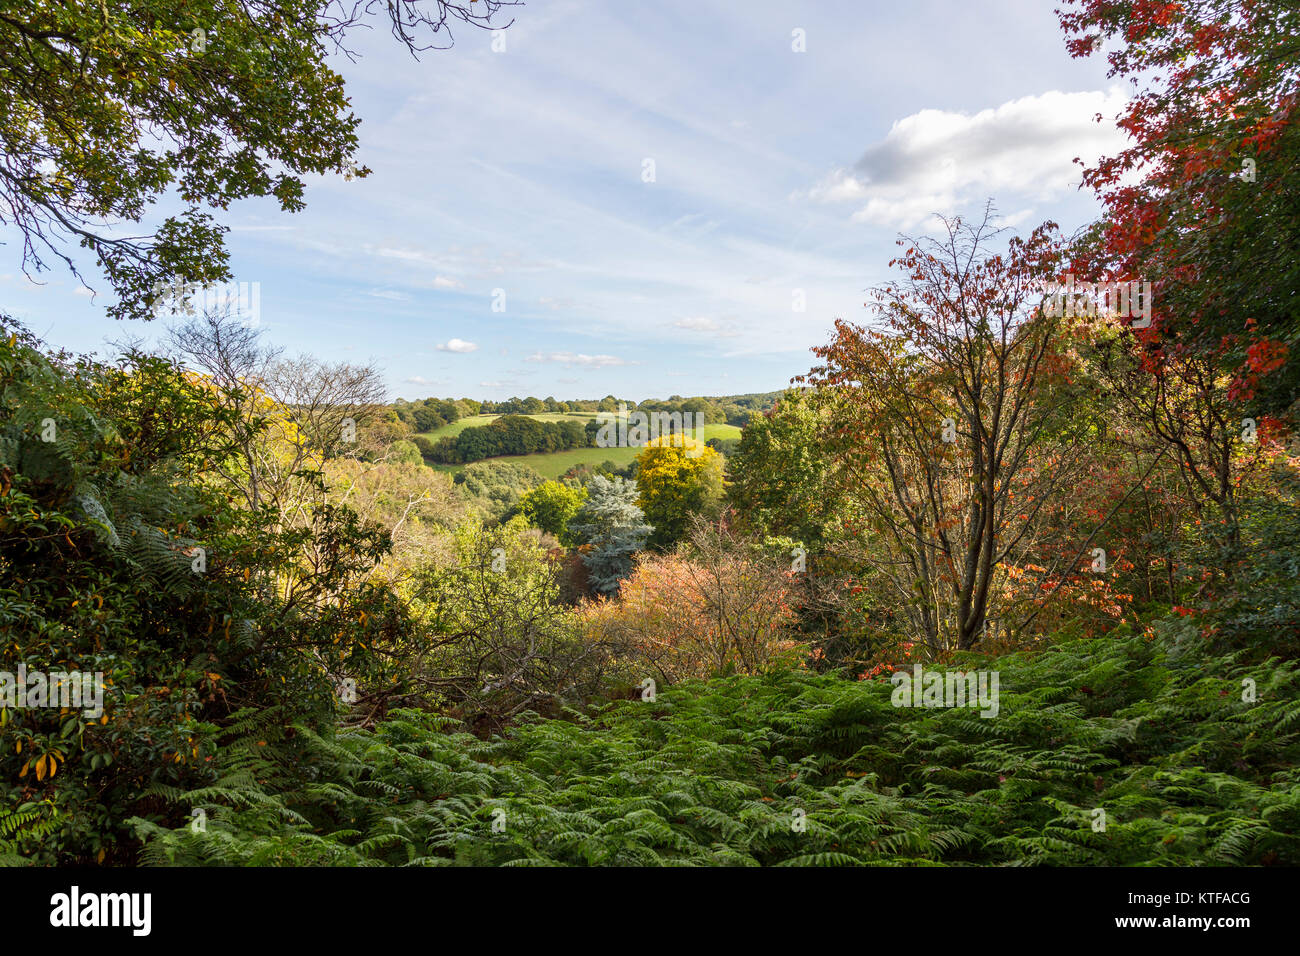 View over Surrey Hills Area of Outstanding National Beauty on a clear sunny day in autumn with blue sky and whispy - Stock Image